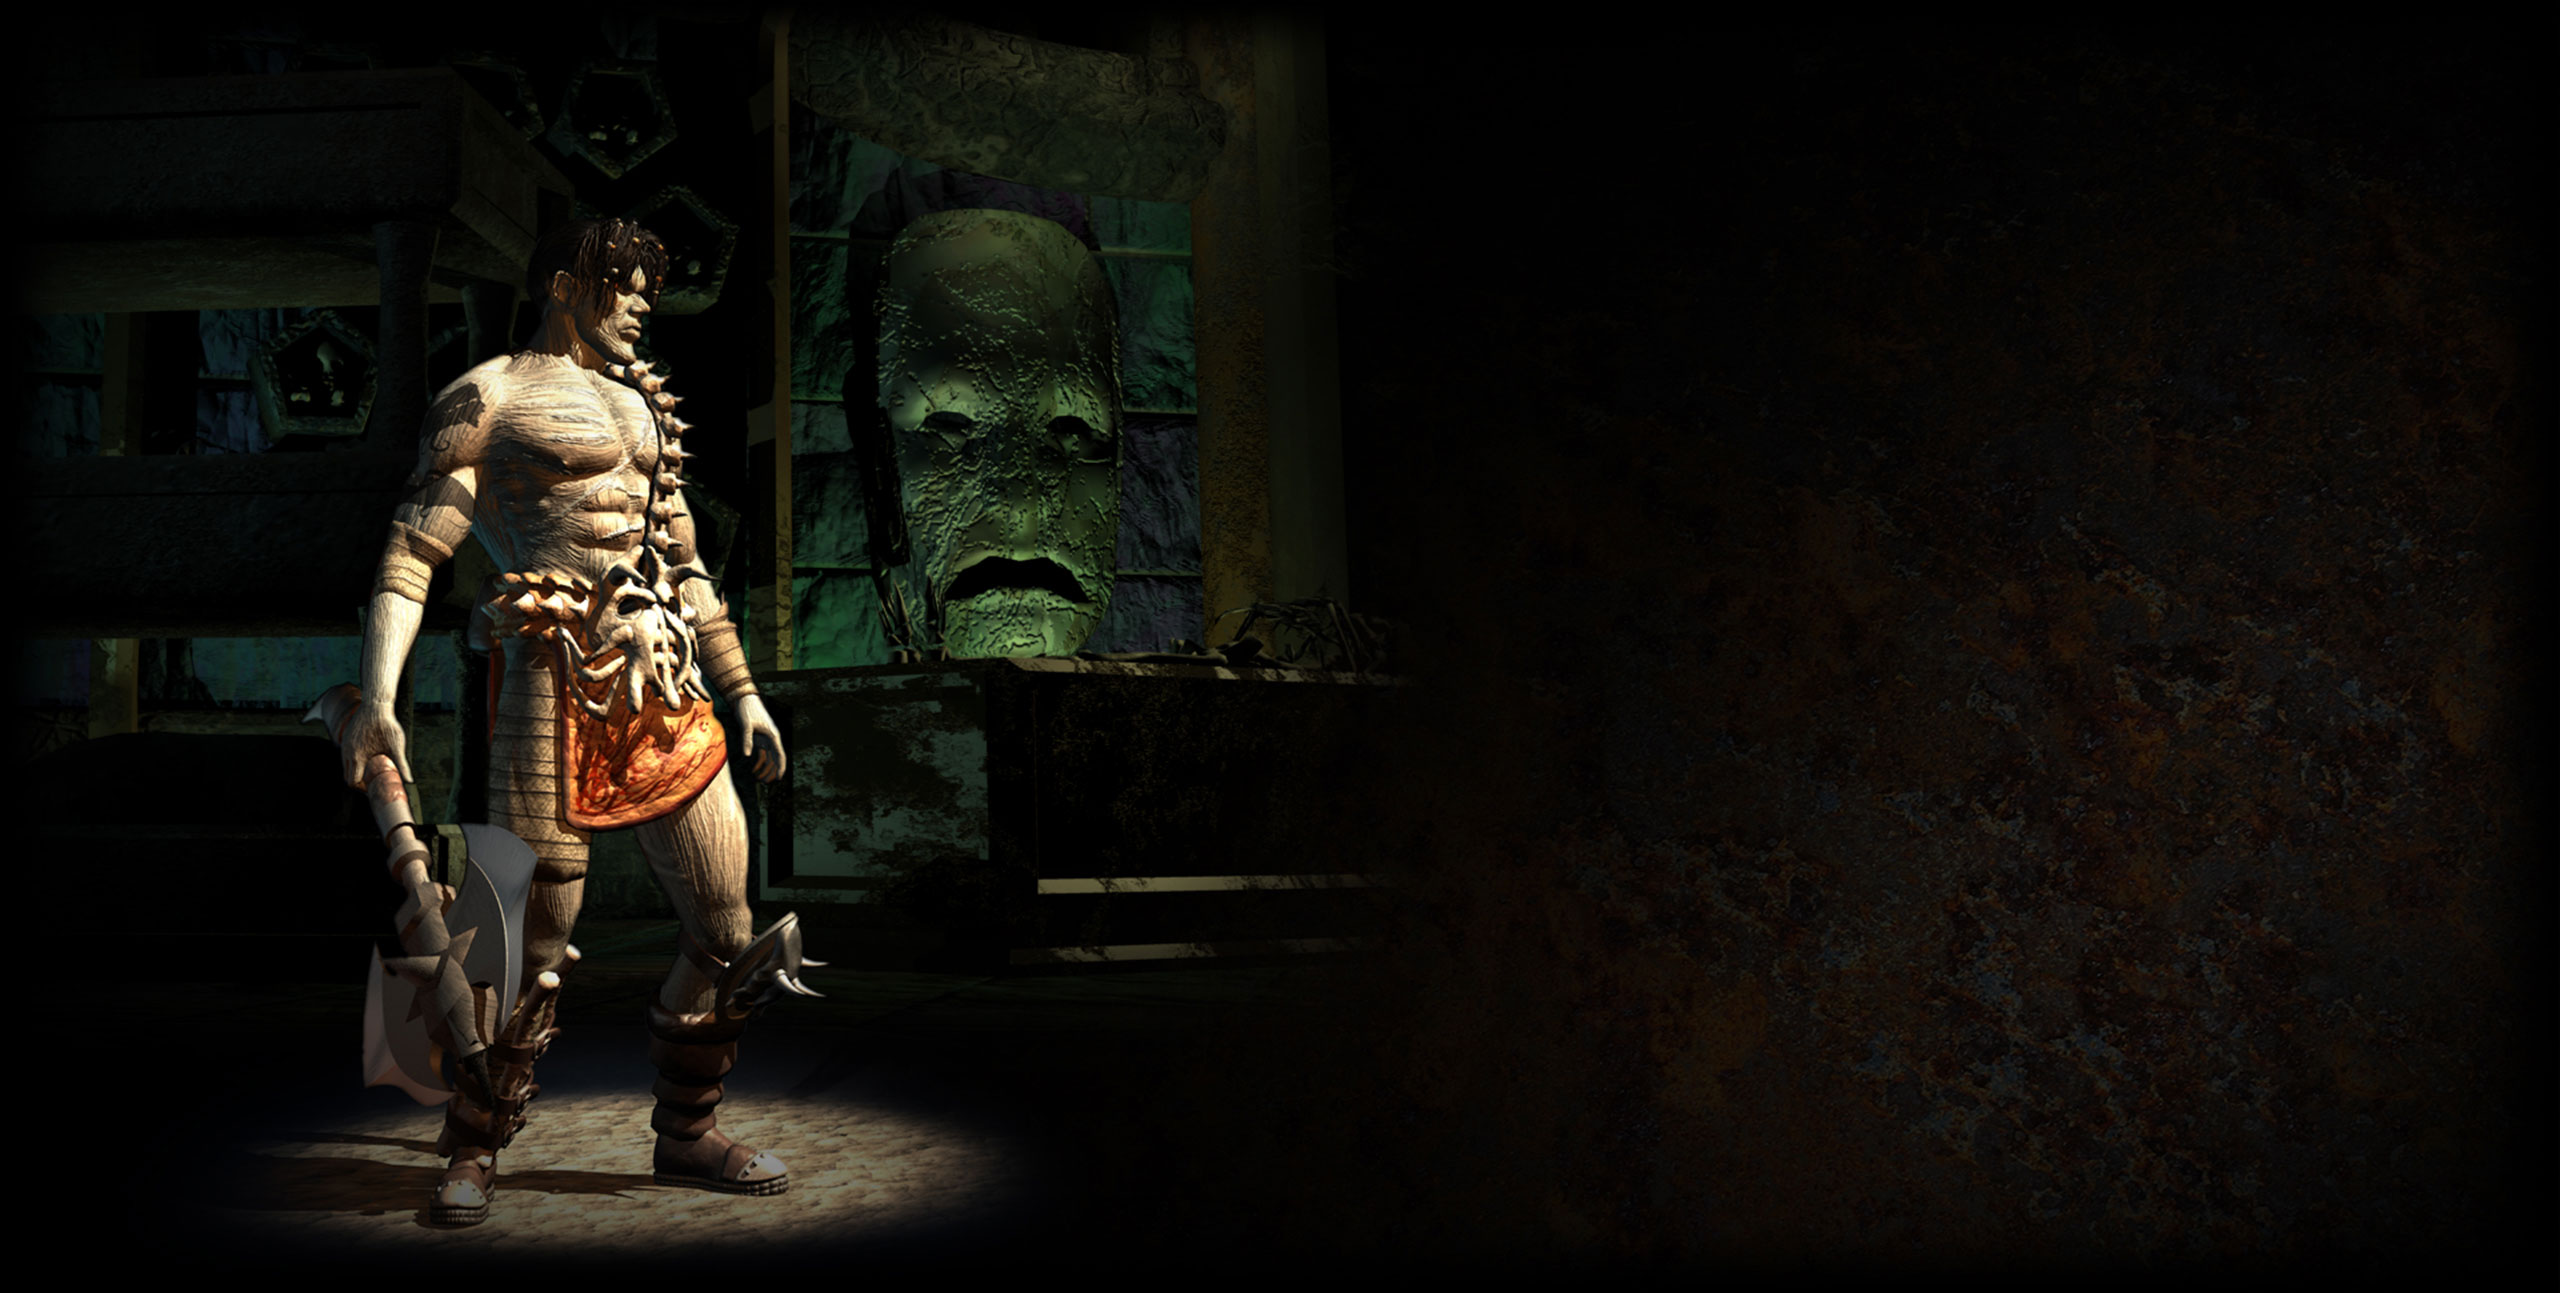 Nameless One, Planescape Torment Enhanced Edition Promotional BG on www.planescape.com